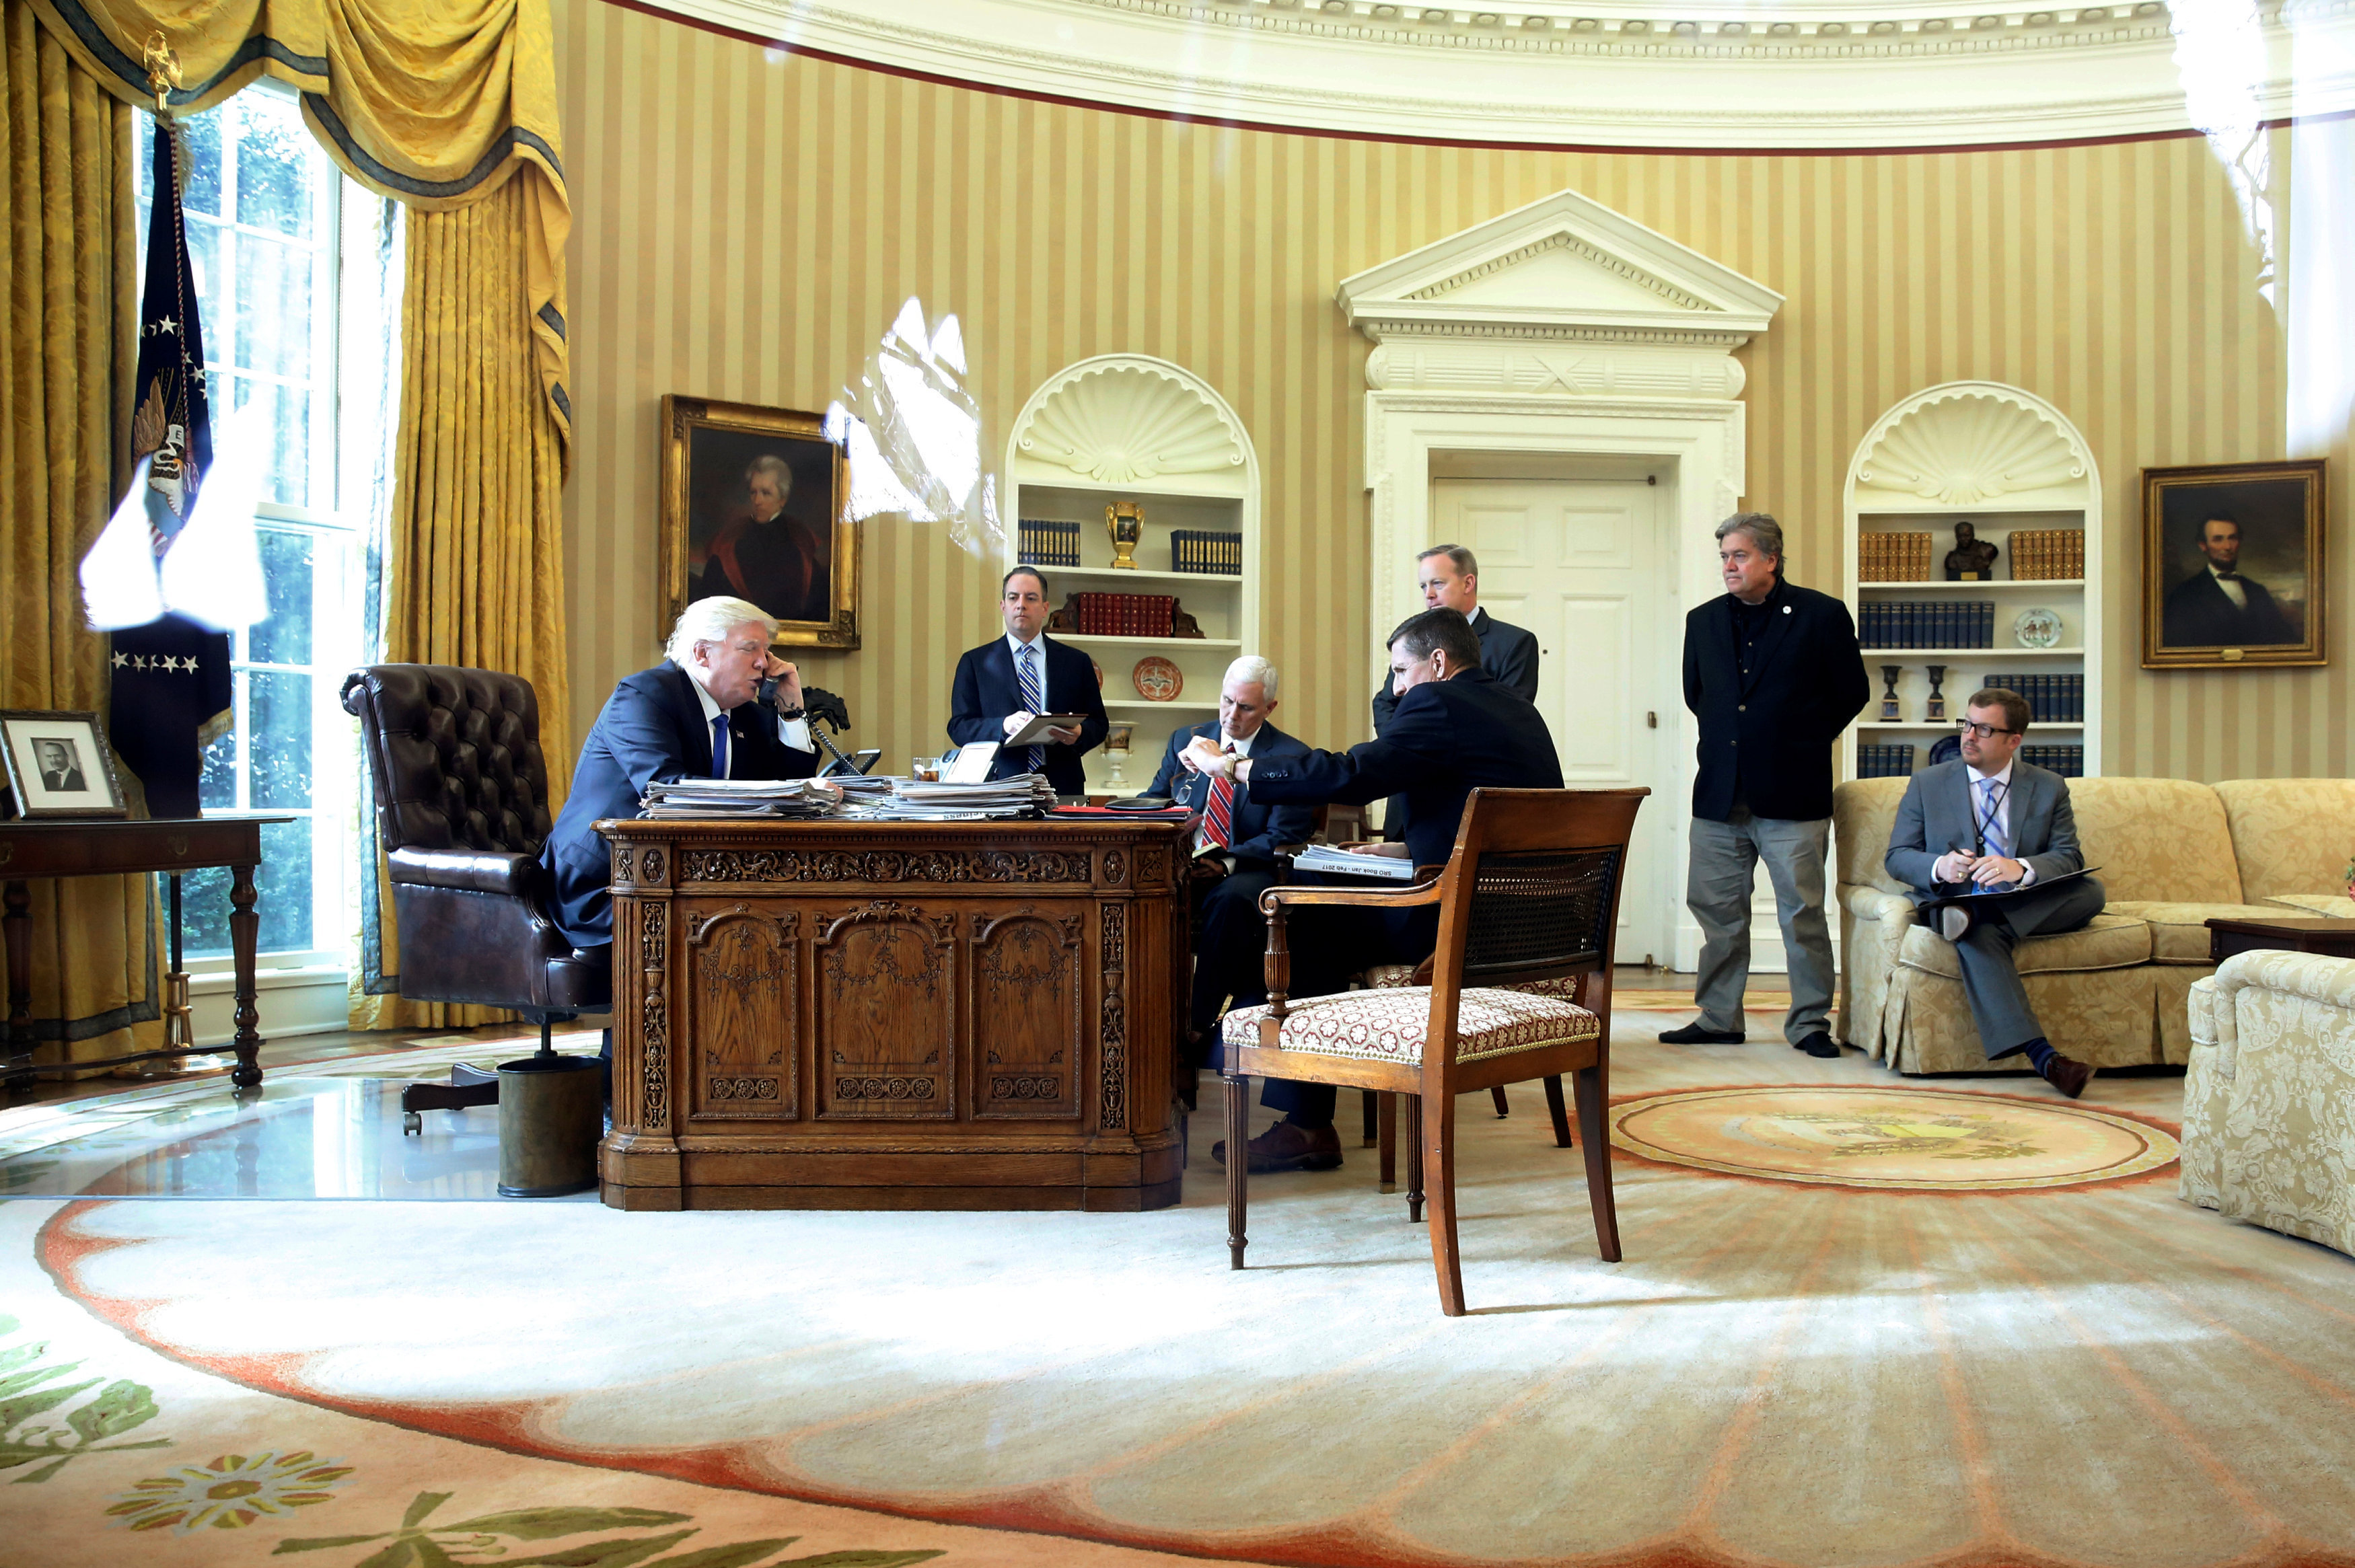 U.S. President Donald Trump (from L), joined by Chief of Staff Reince Priebus, Vice President Mike Pence, National Security Advisor Michael Flynn, Communications Director Sean Spicer and senior advisor Steve Bannon, speaks by phone with Russia's President Vladimir Putin in the Oval Office at the White House in Washington, U.S. January 28, 2017